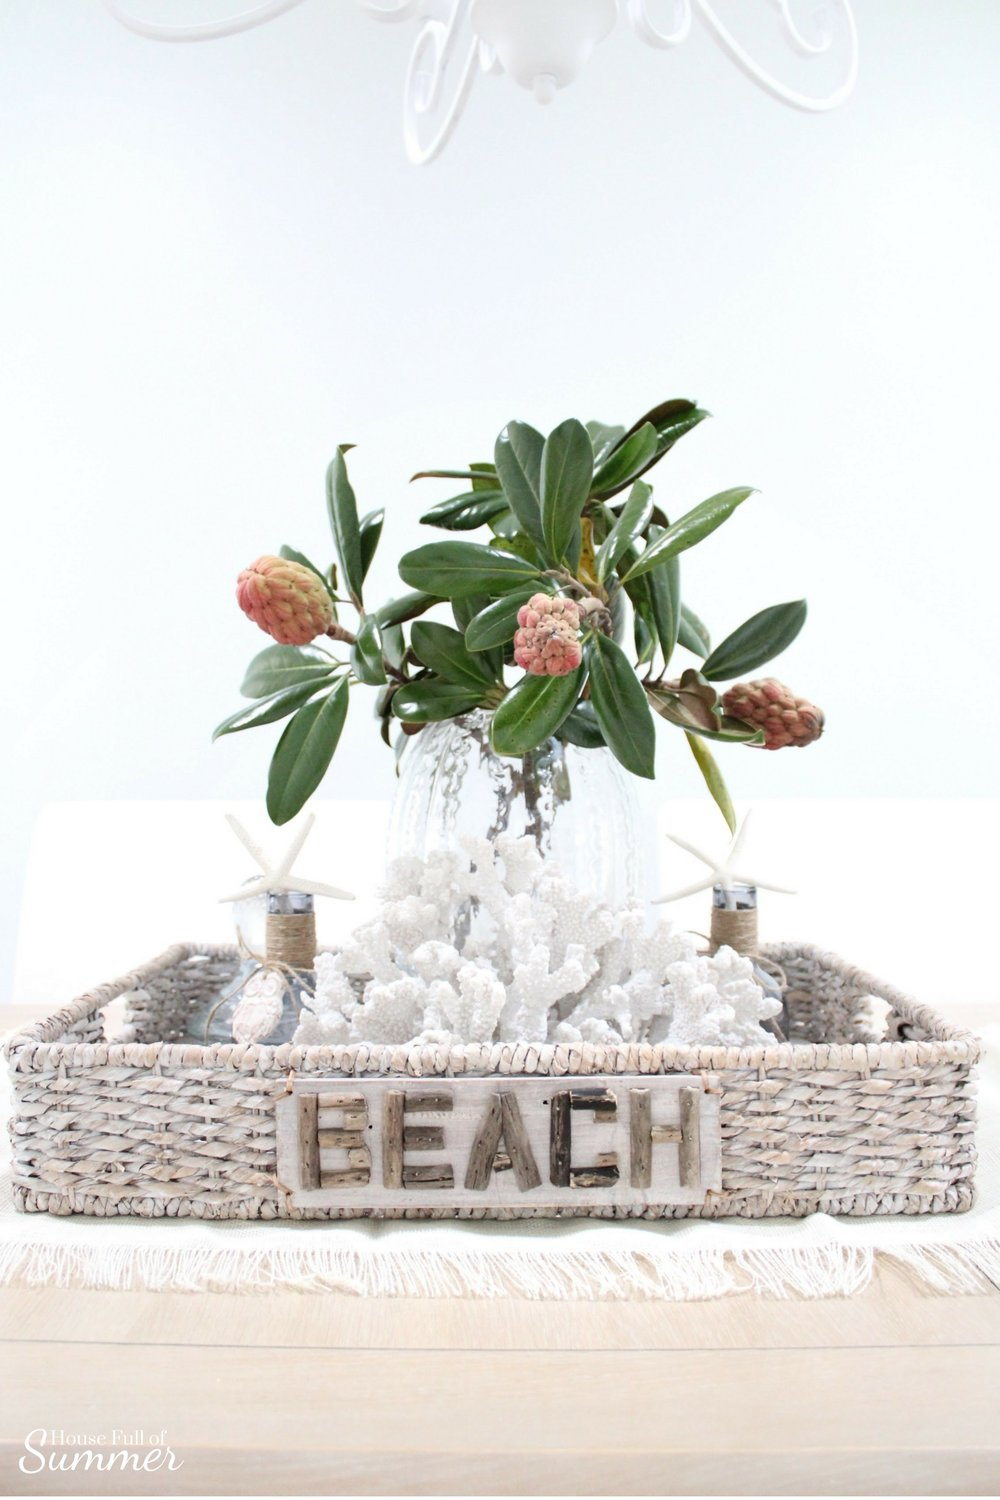 House Full of Summer: Fall Home Tour Blog Hop - Cozy, Coastal, Chic  Dining Room, pottery barn style, beachy decor, coral, starfish, magnolia leaves, tray styling ideas, table decor